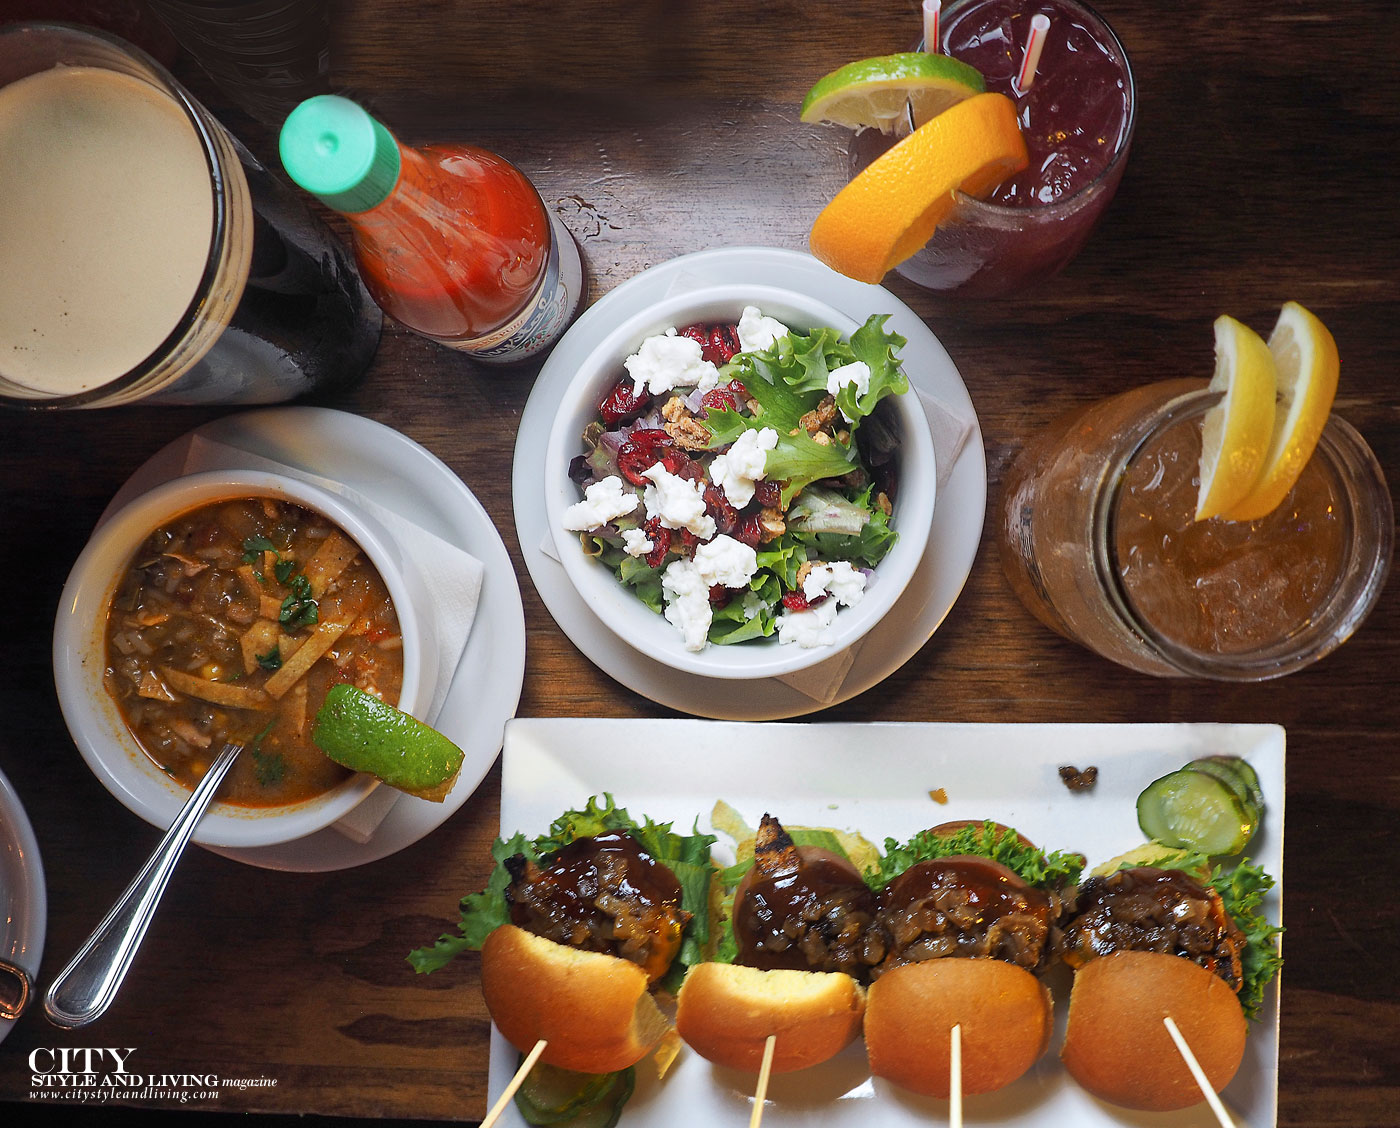 City Style and Living Magazine Barcadia New Orleans dinner burgers, salad, soup